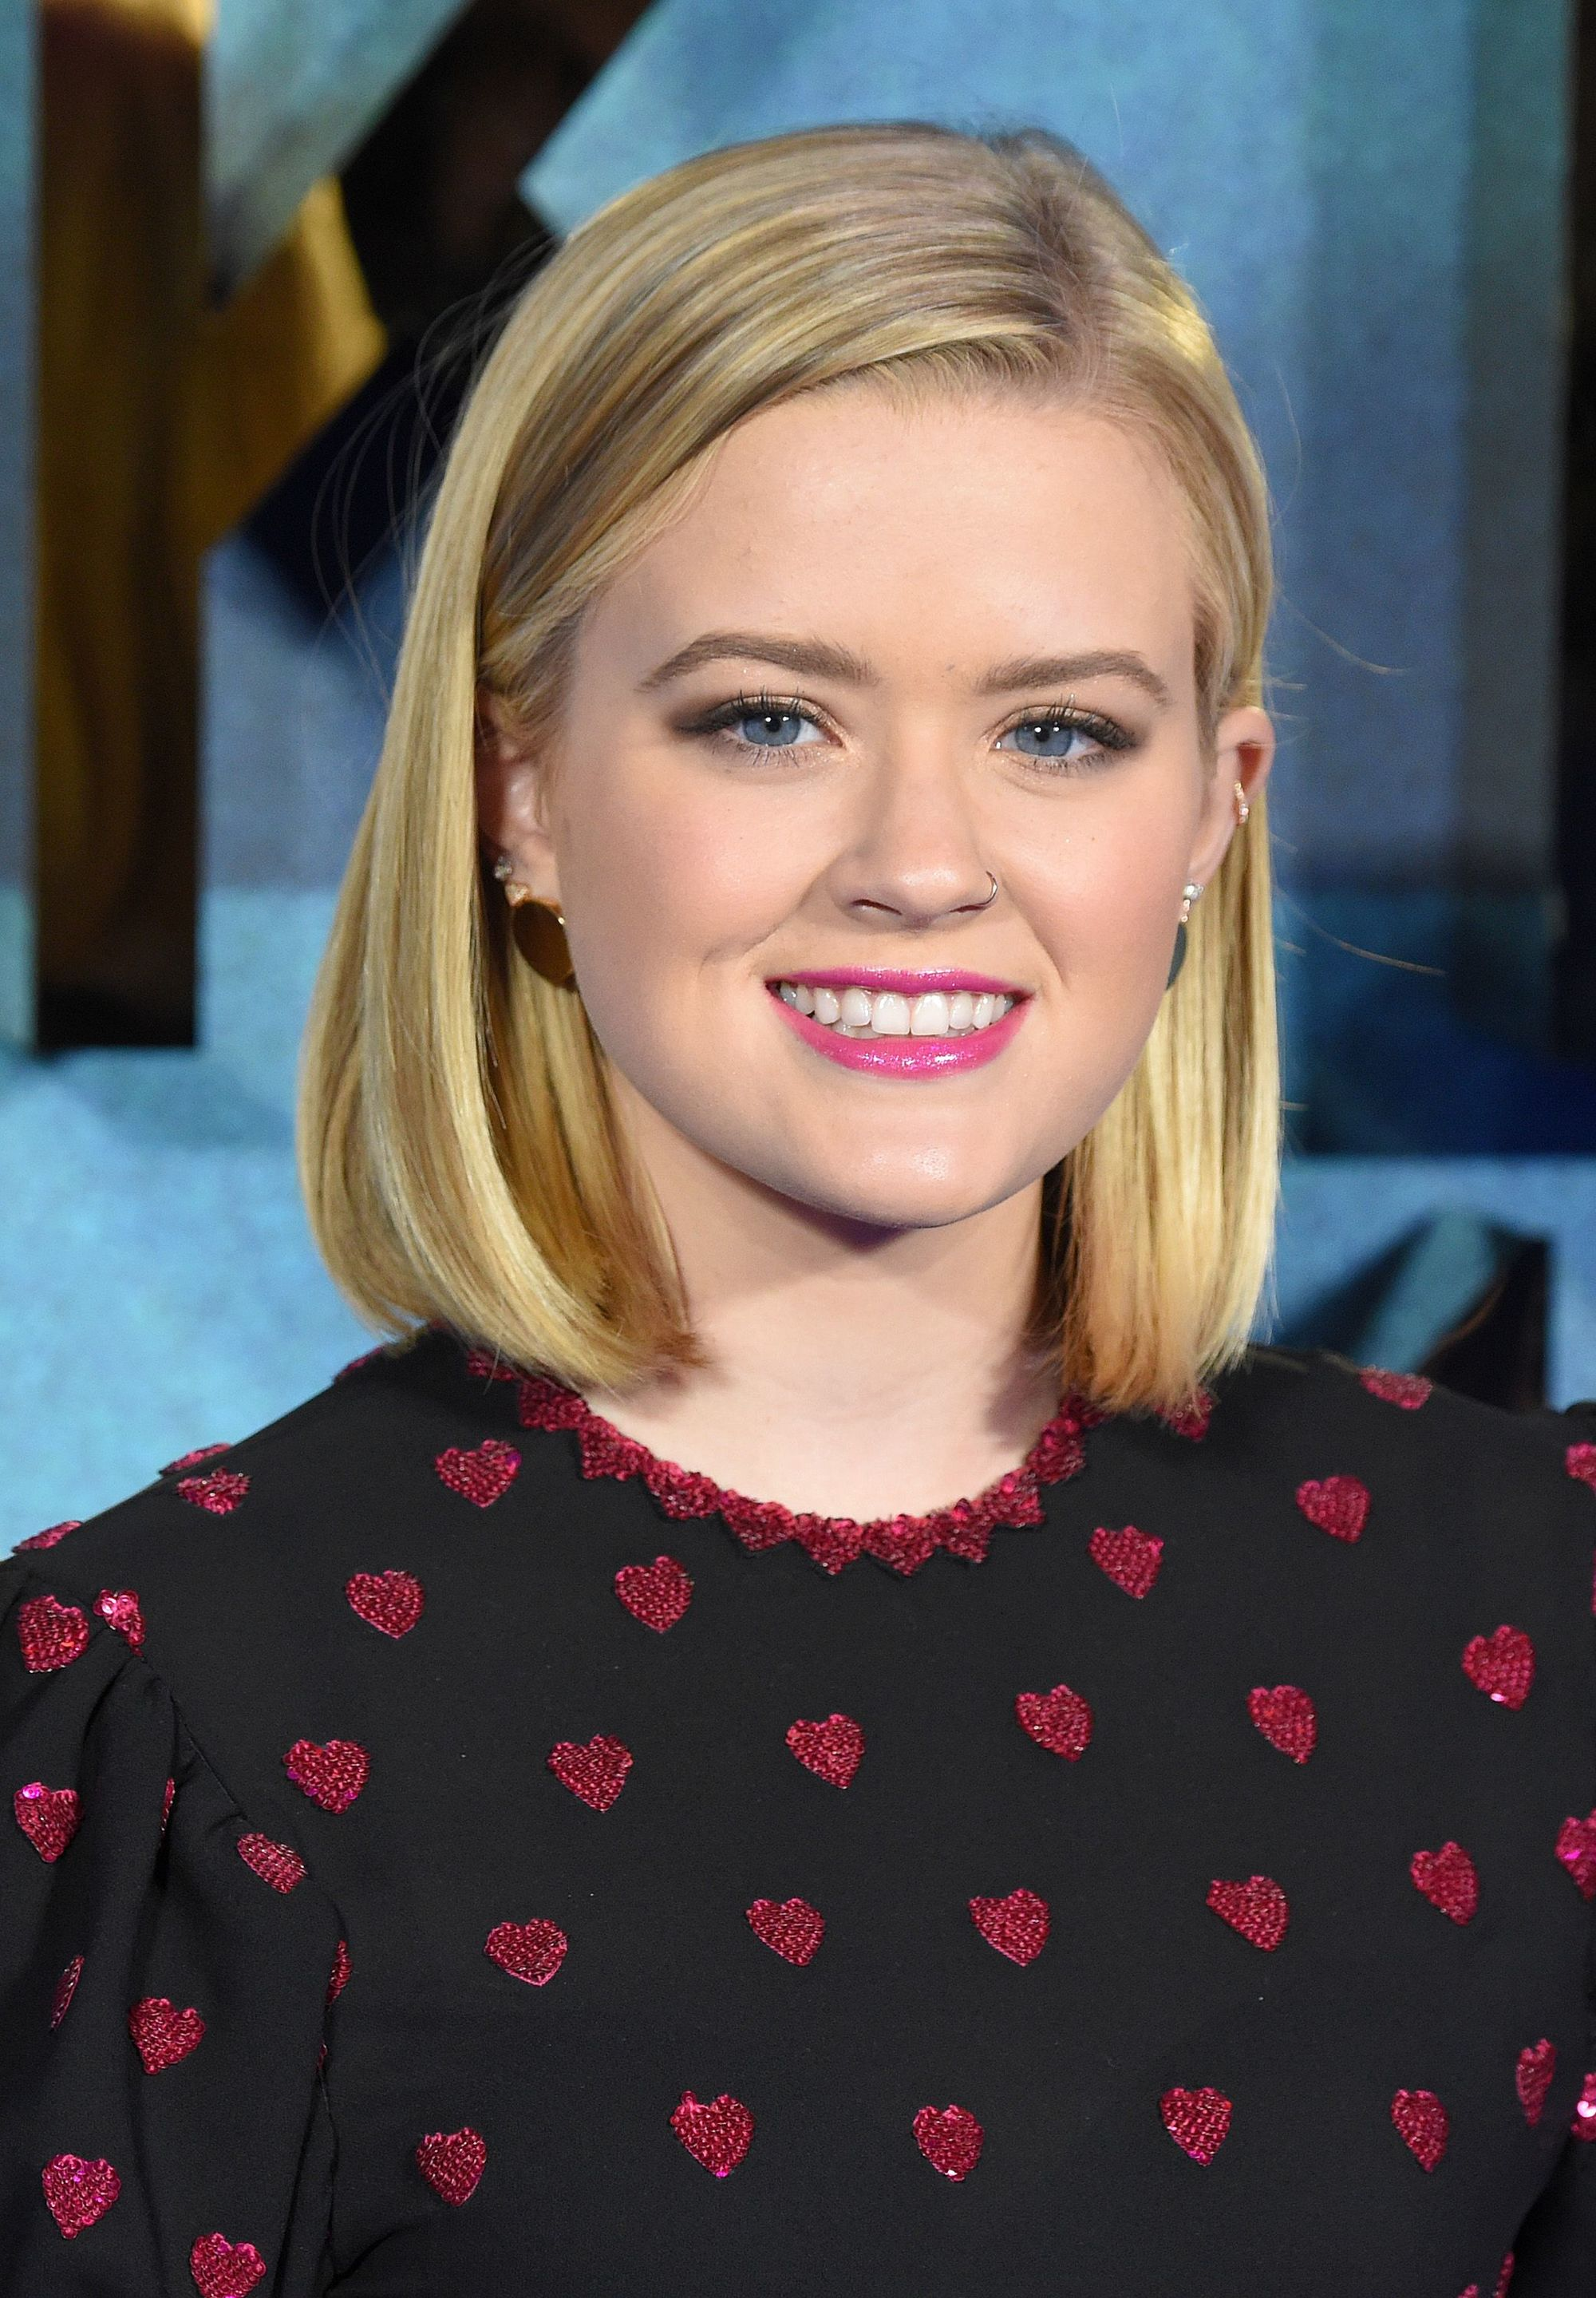 reese witherspoon and ryan phillippe's daughter ava phillippe with a new bob haircut